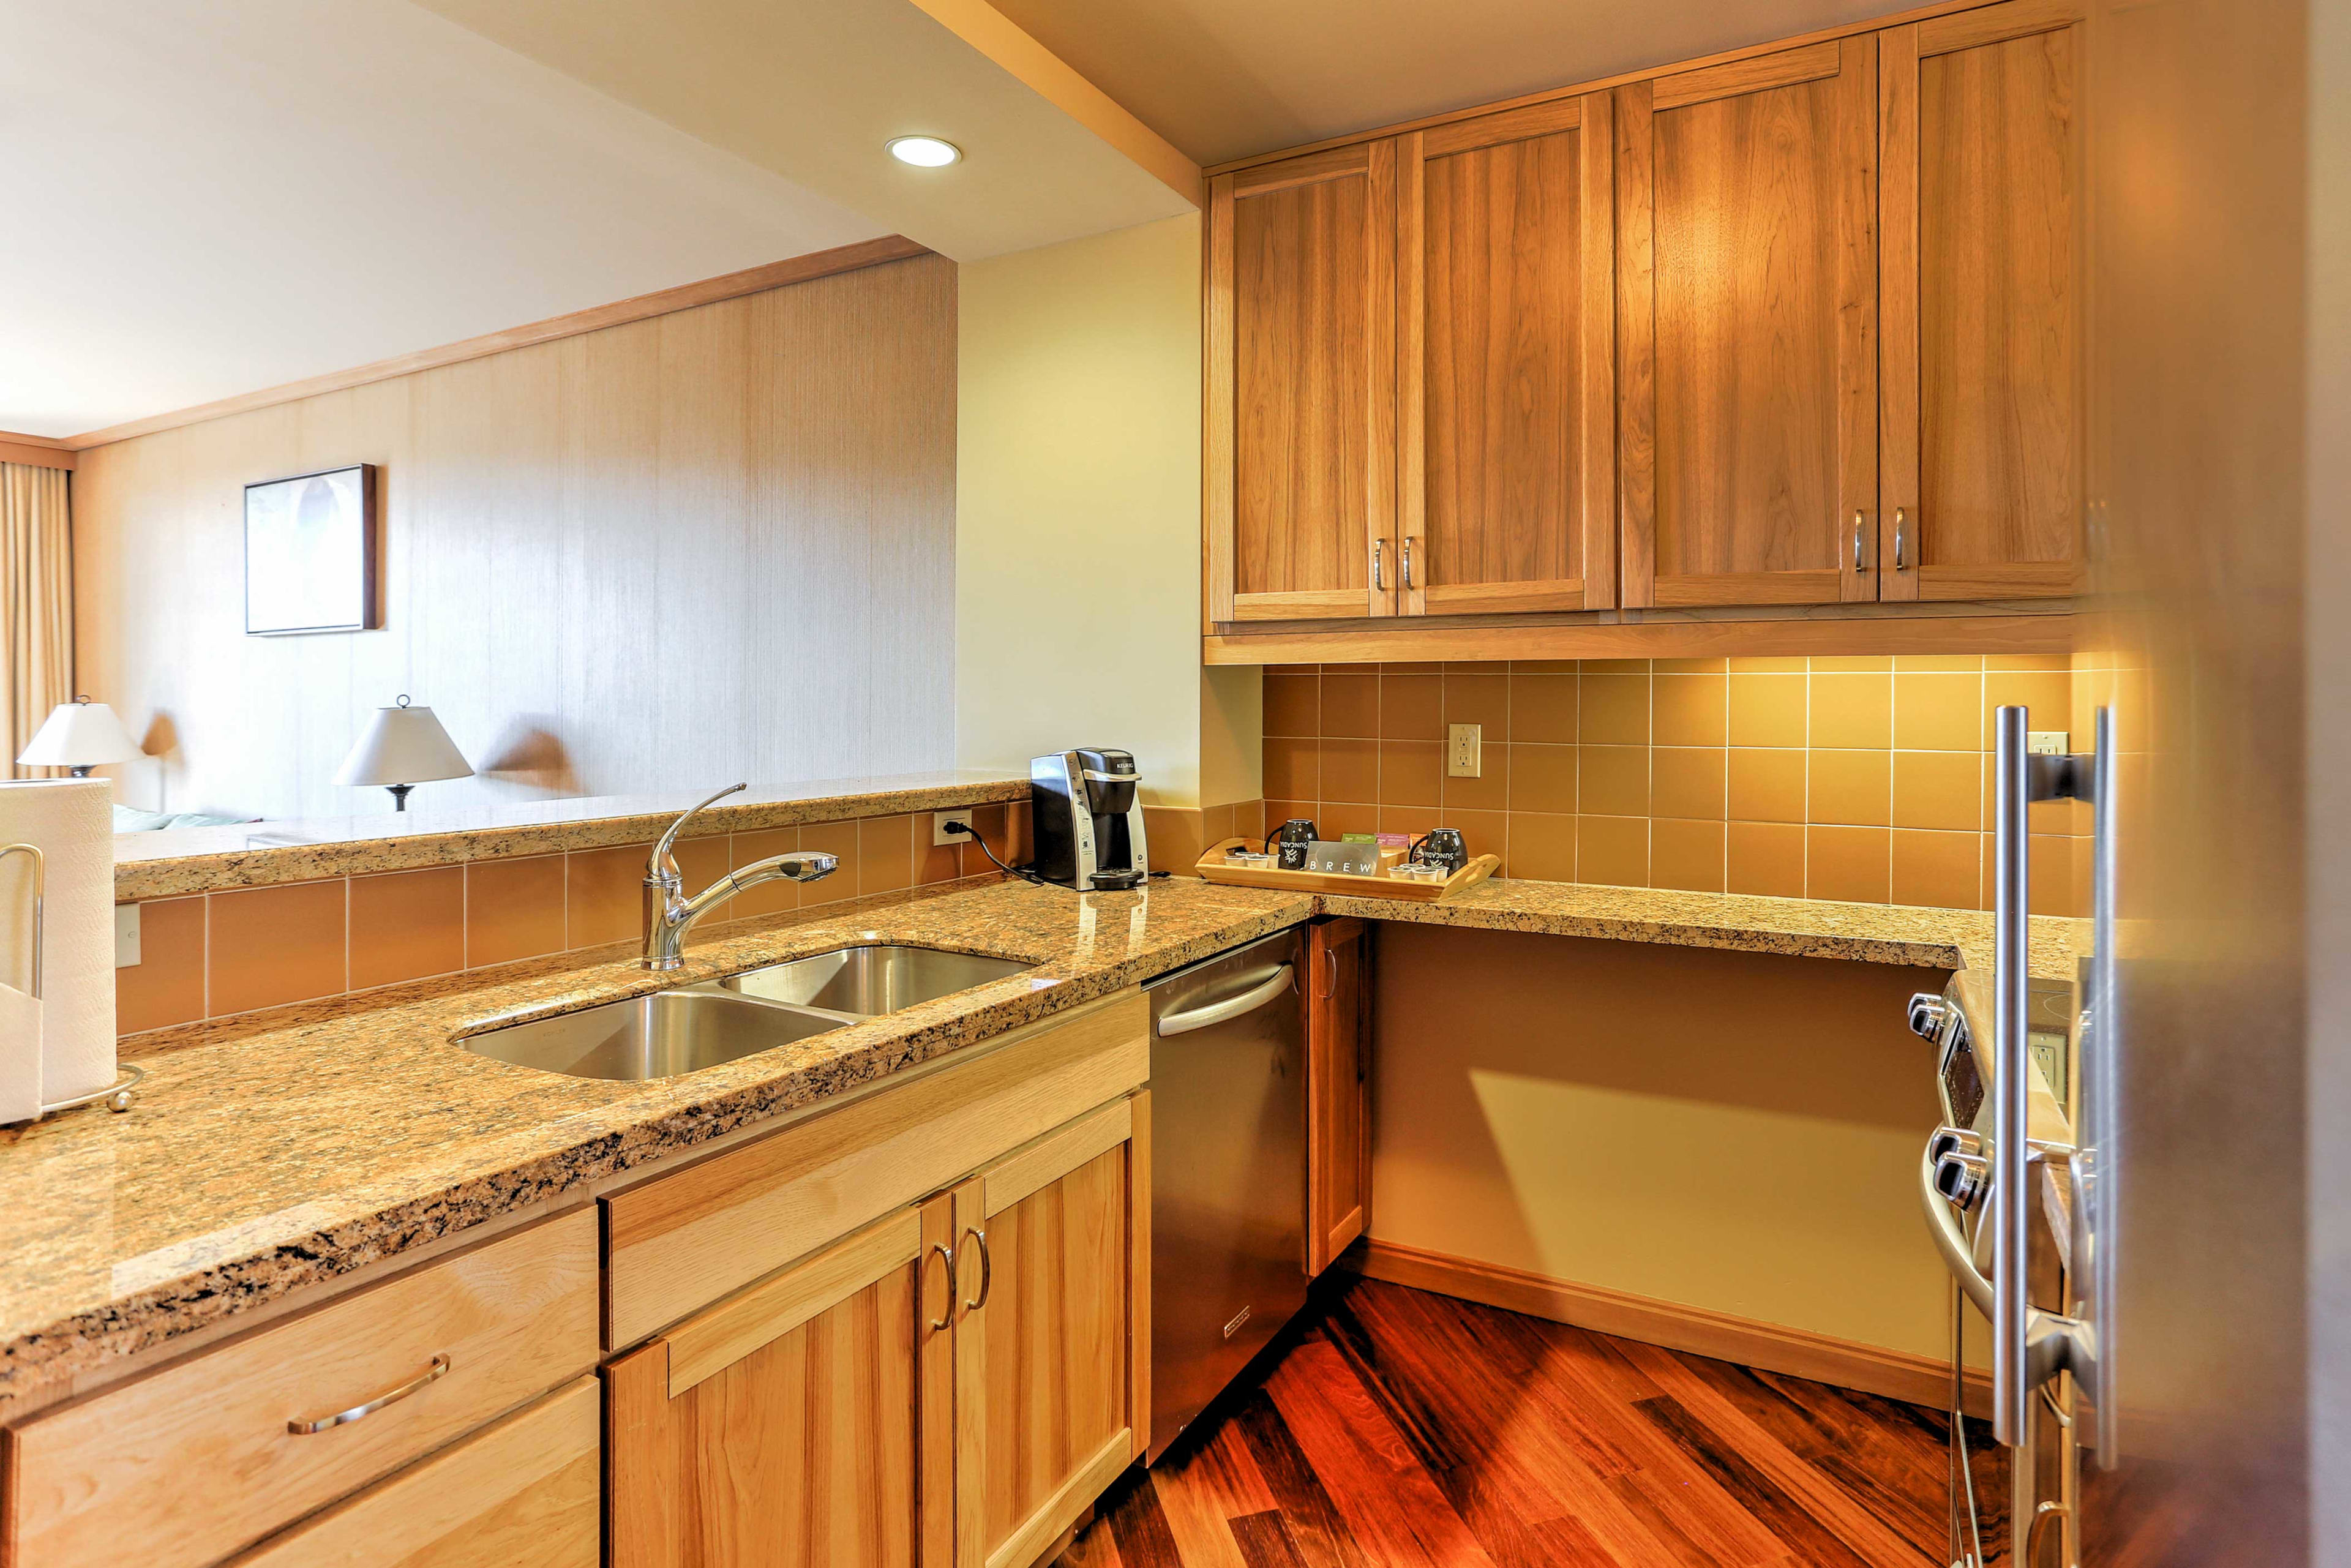 The kitchen opens into the living room through a breakfast bar.